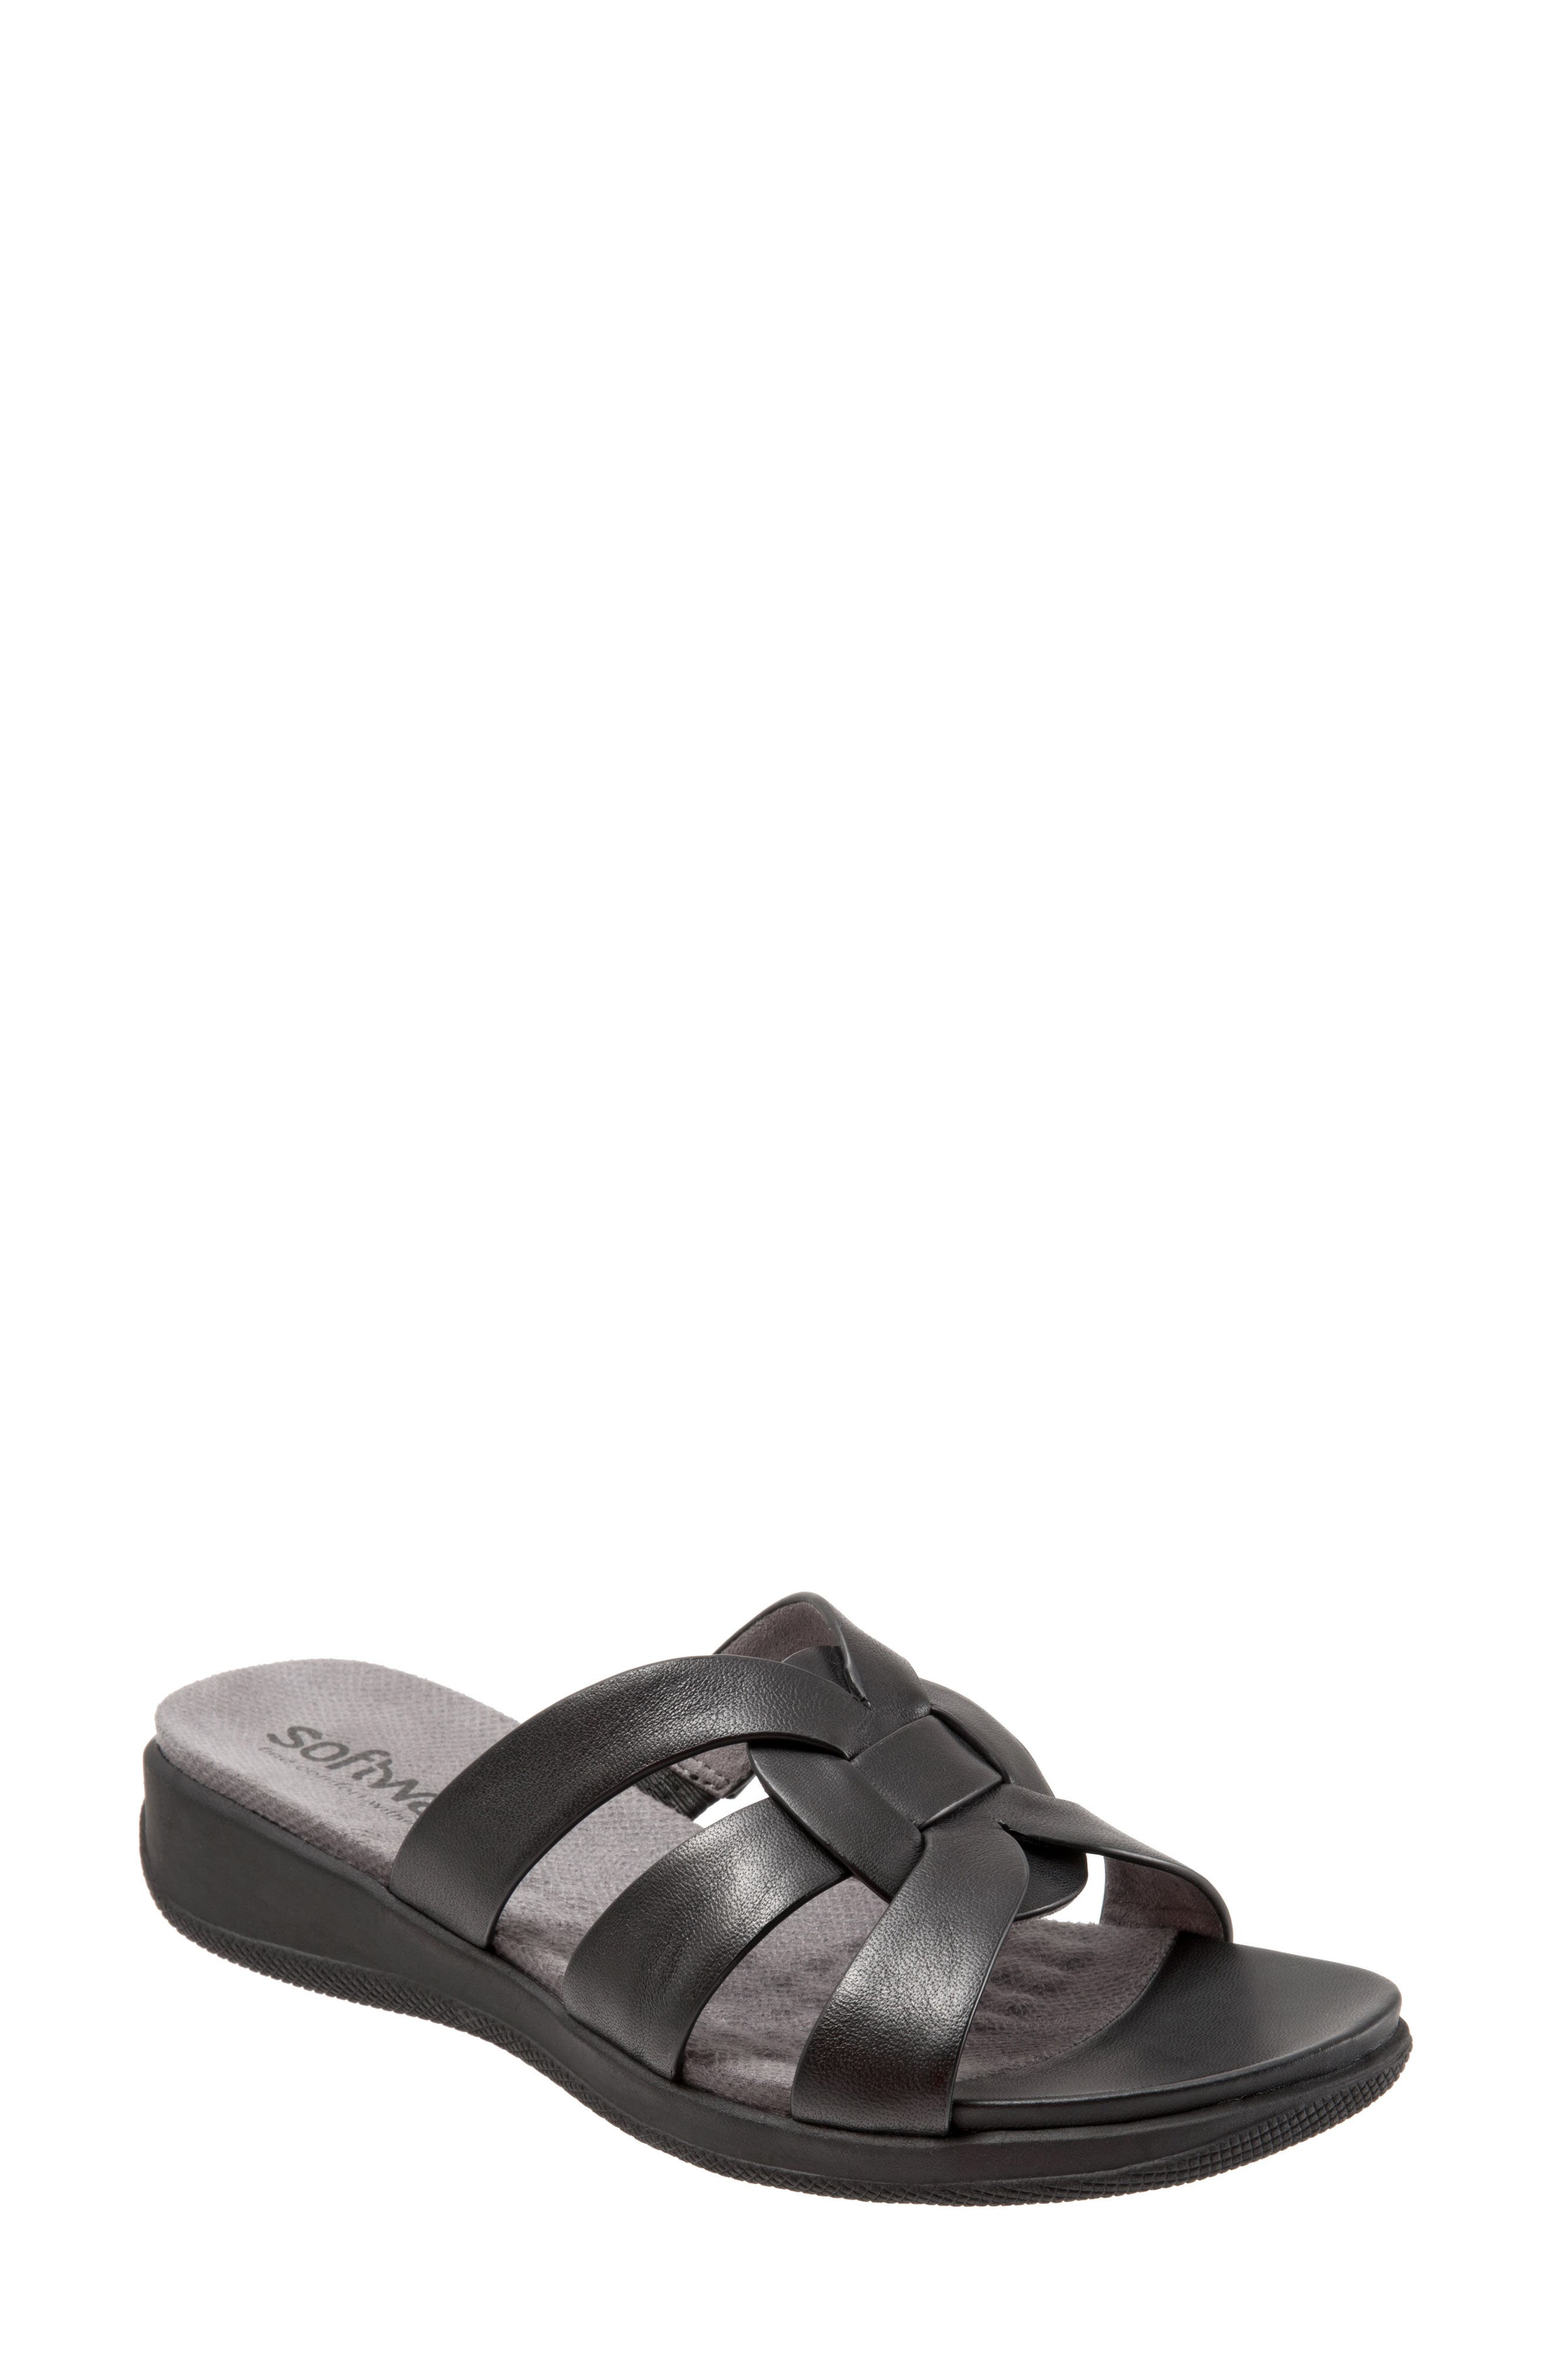 Thompson Slide Sandal,                         Main,                         color, 001